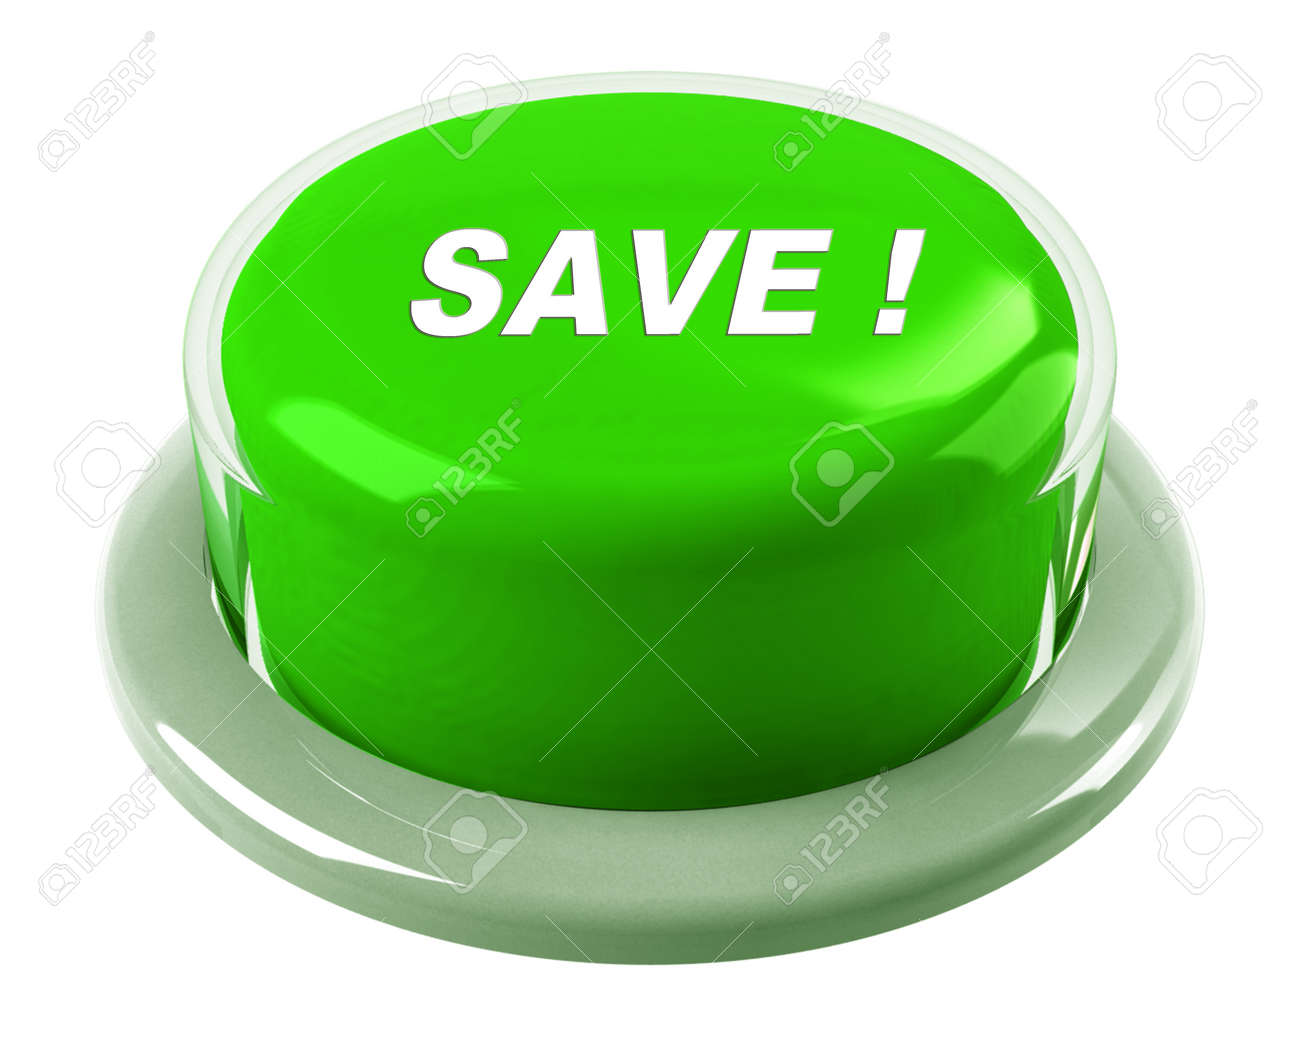 A green button with the word Save! on it Stock Photo - 11850024